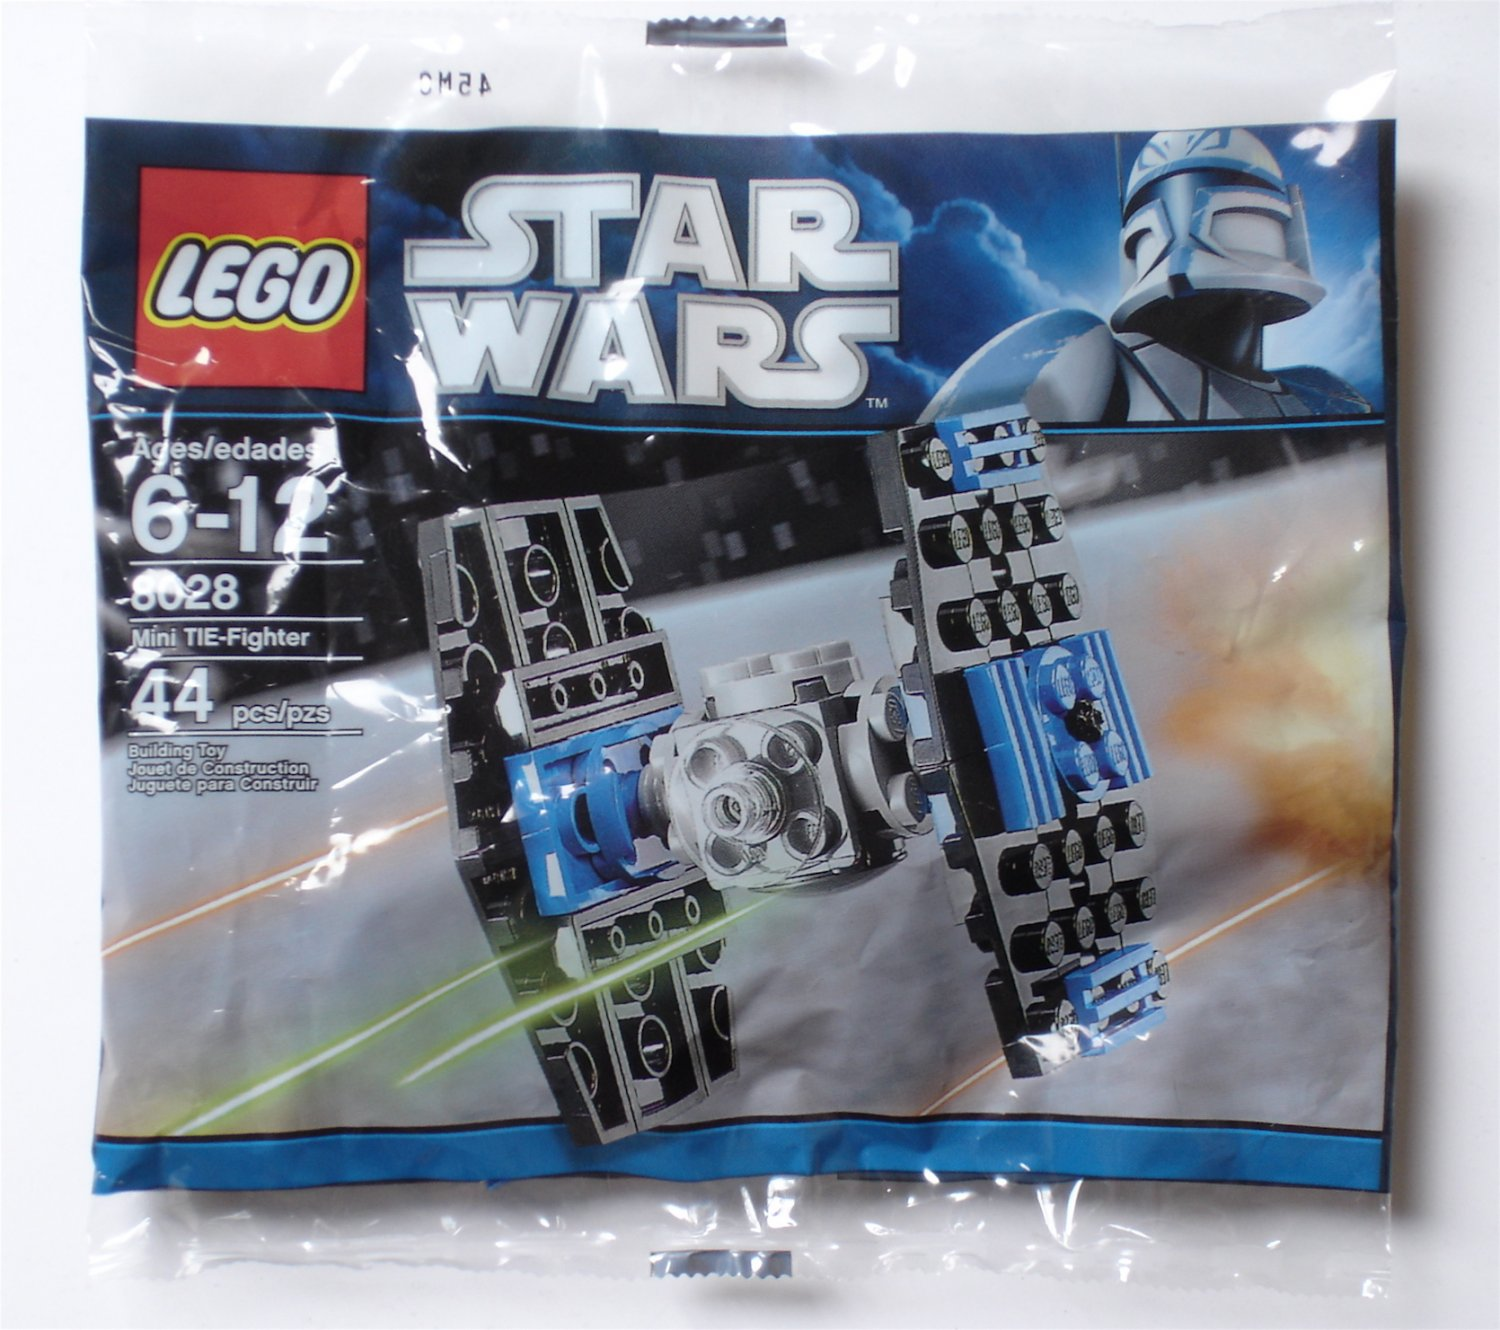 LEGO Star Wars Mini TIE-Fighter 8028 NEW